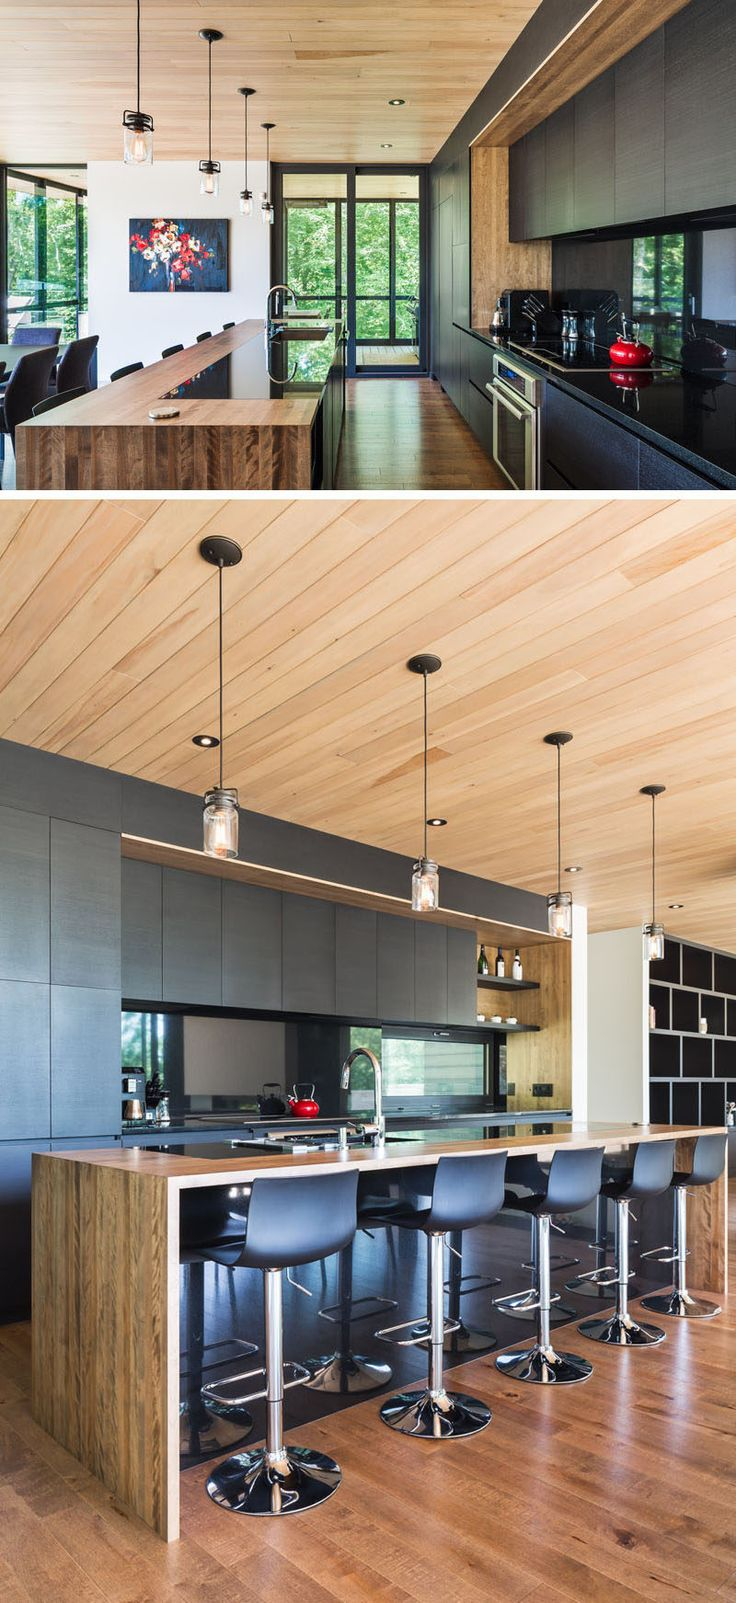 In this kitchen, black ash colored cabinetry without hardware has been combined with wooden elements to create a seamless contemporary look that contrasts the white walls.